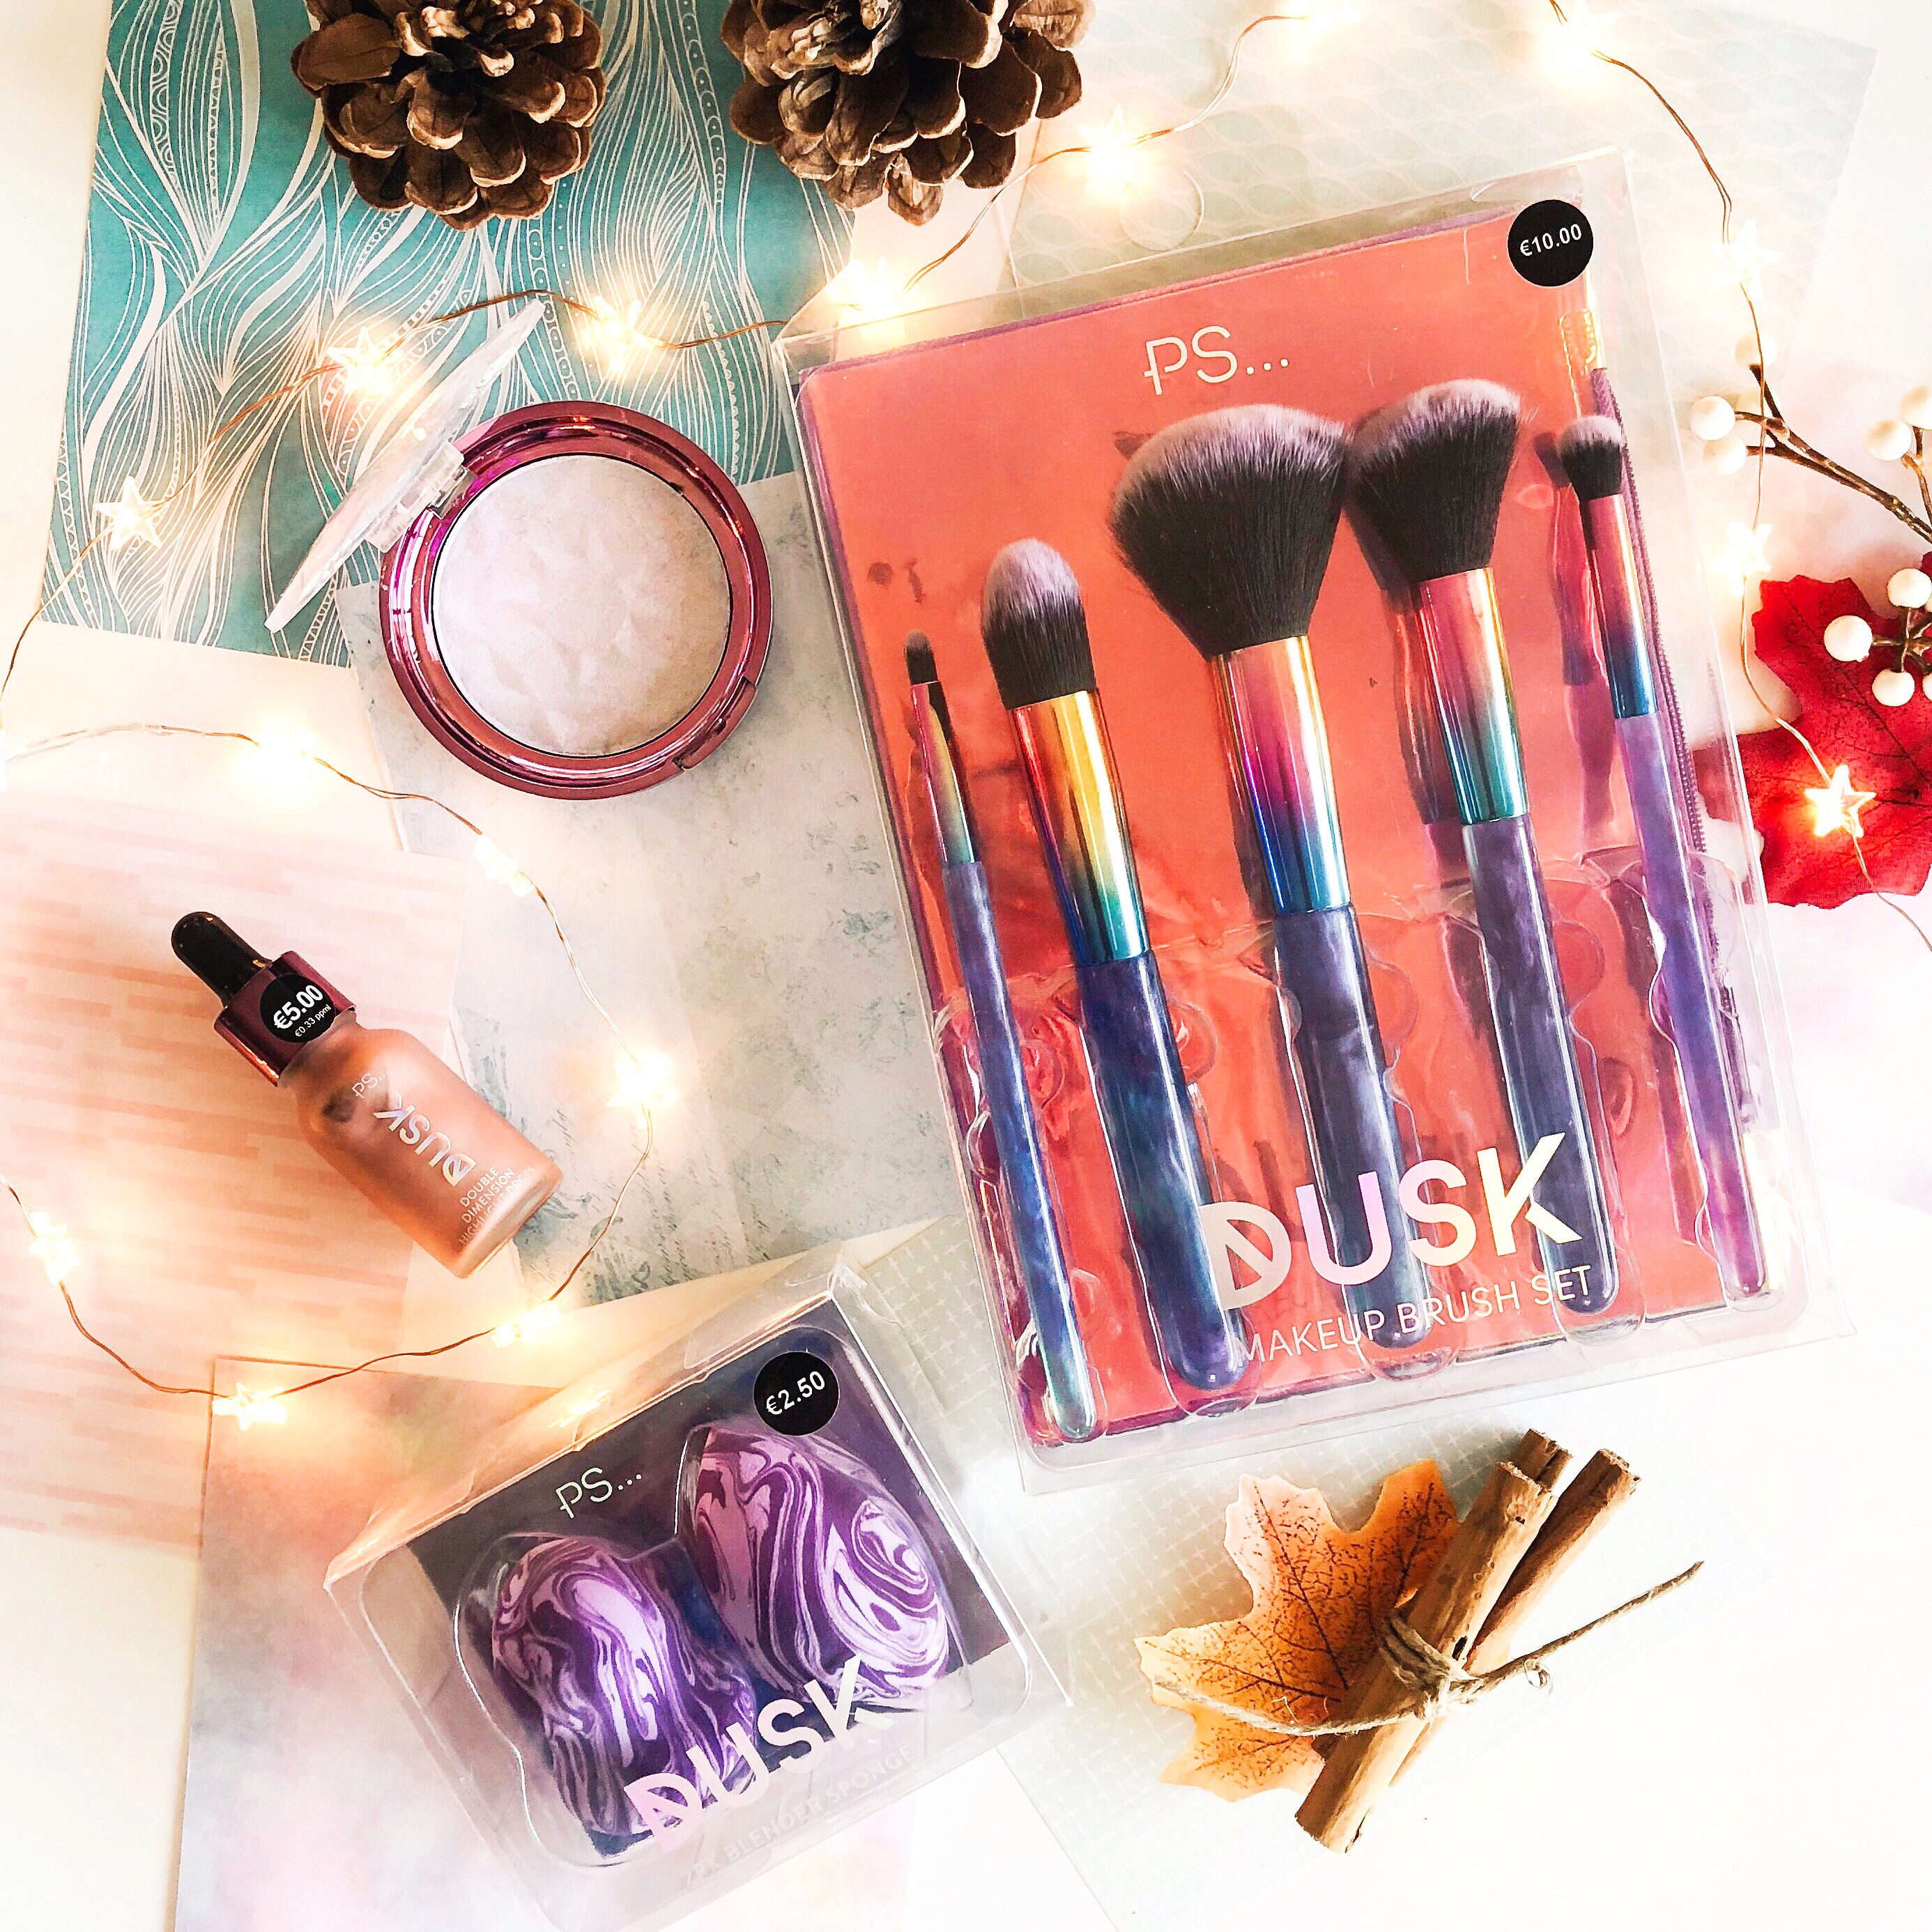 Primark PS Dusk Collectie